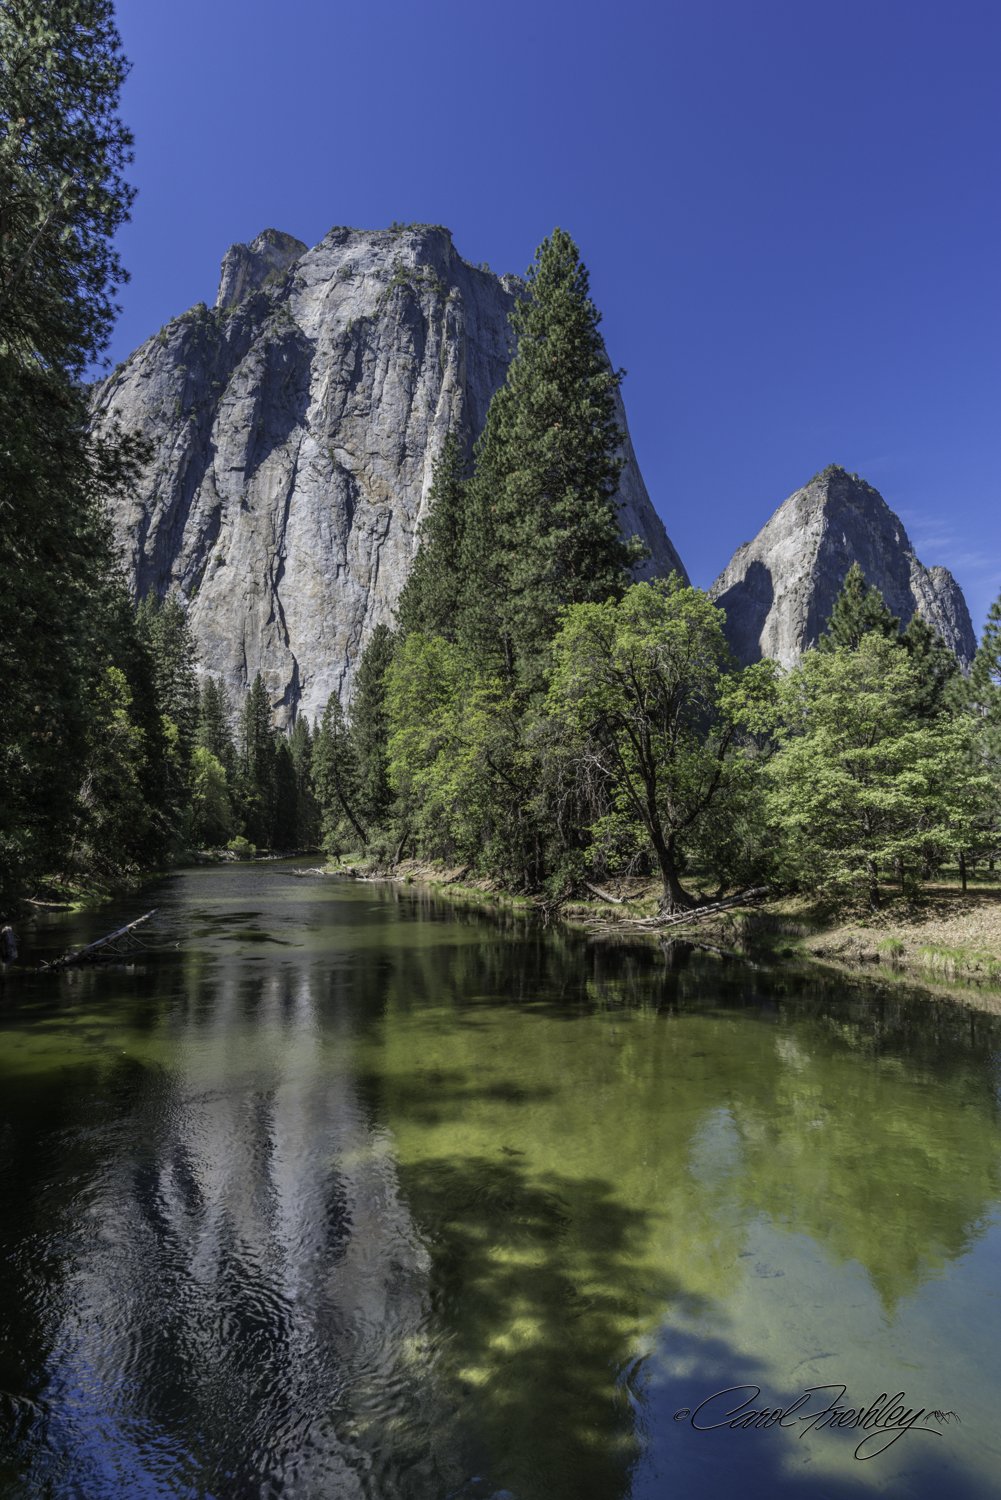 View of Cathedral Rocks from the Merced River.